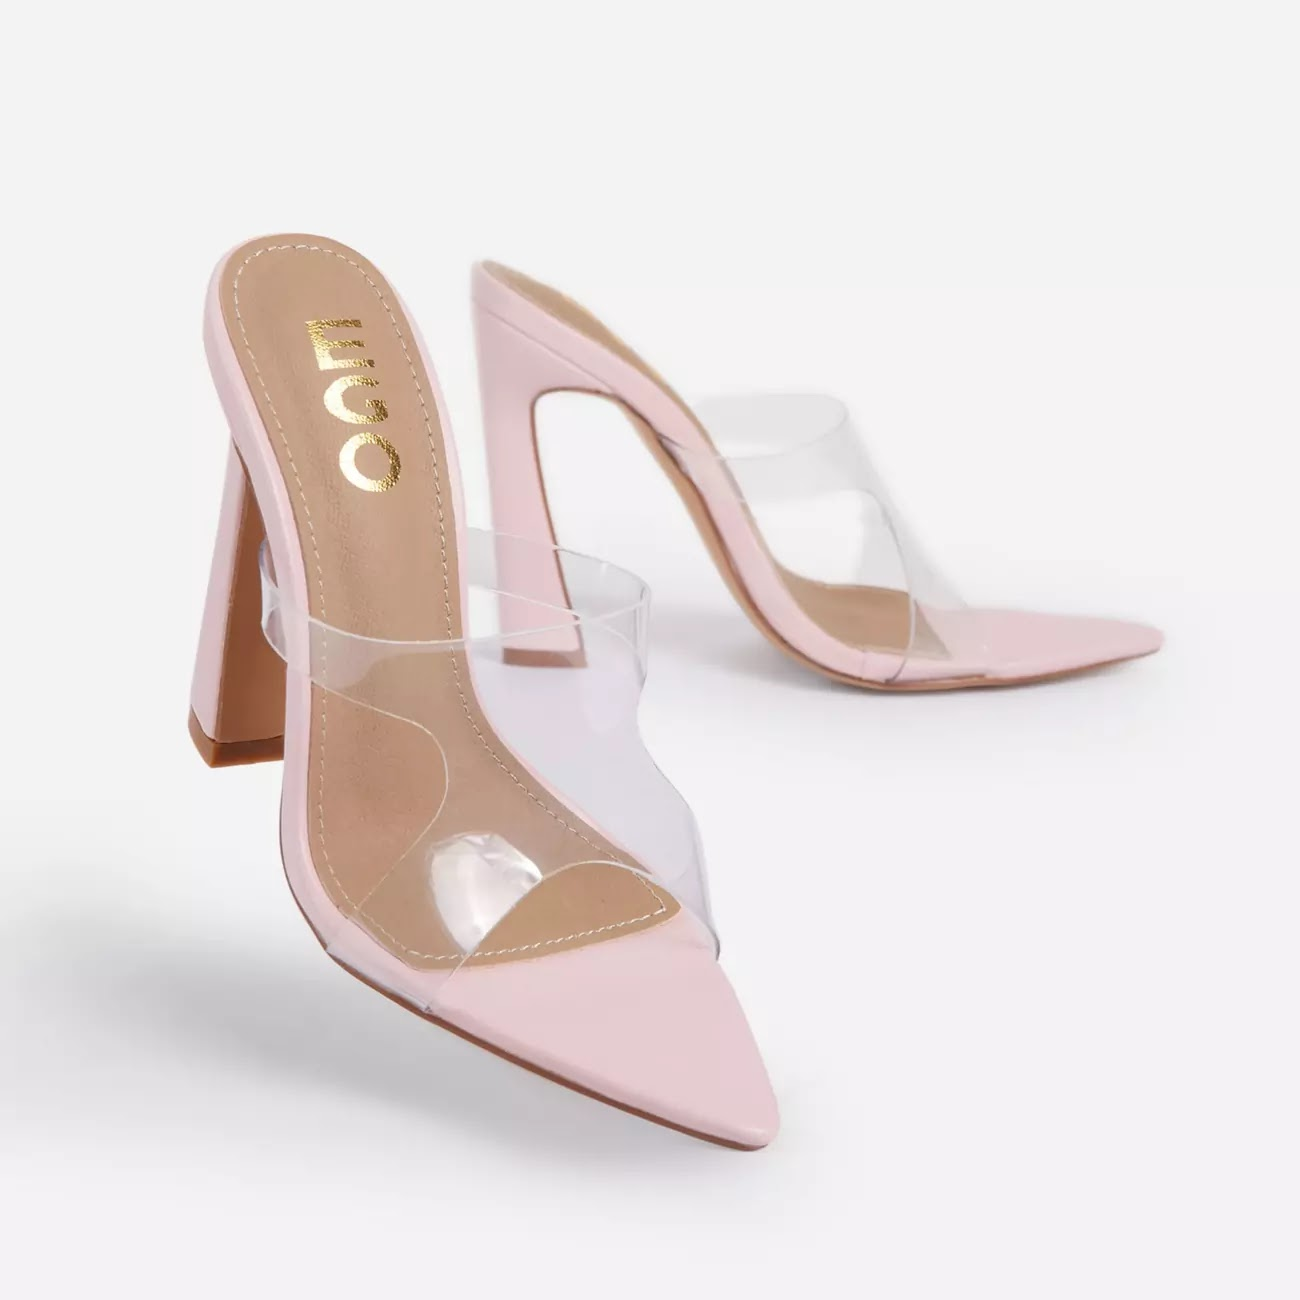 https://www.awin1.com/cread.php?awinmid=7576&awinaffid=637679&ued=https%3A%2F%2Fego.co.uk%2Fhab576-persona-pointed-peep-toe-clear-perspex-curved-block-heel-in-pink-faux-leather.html